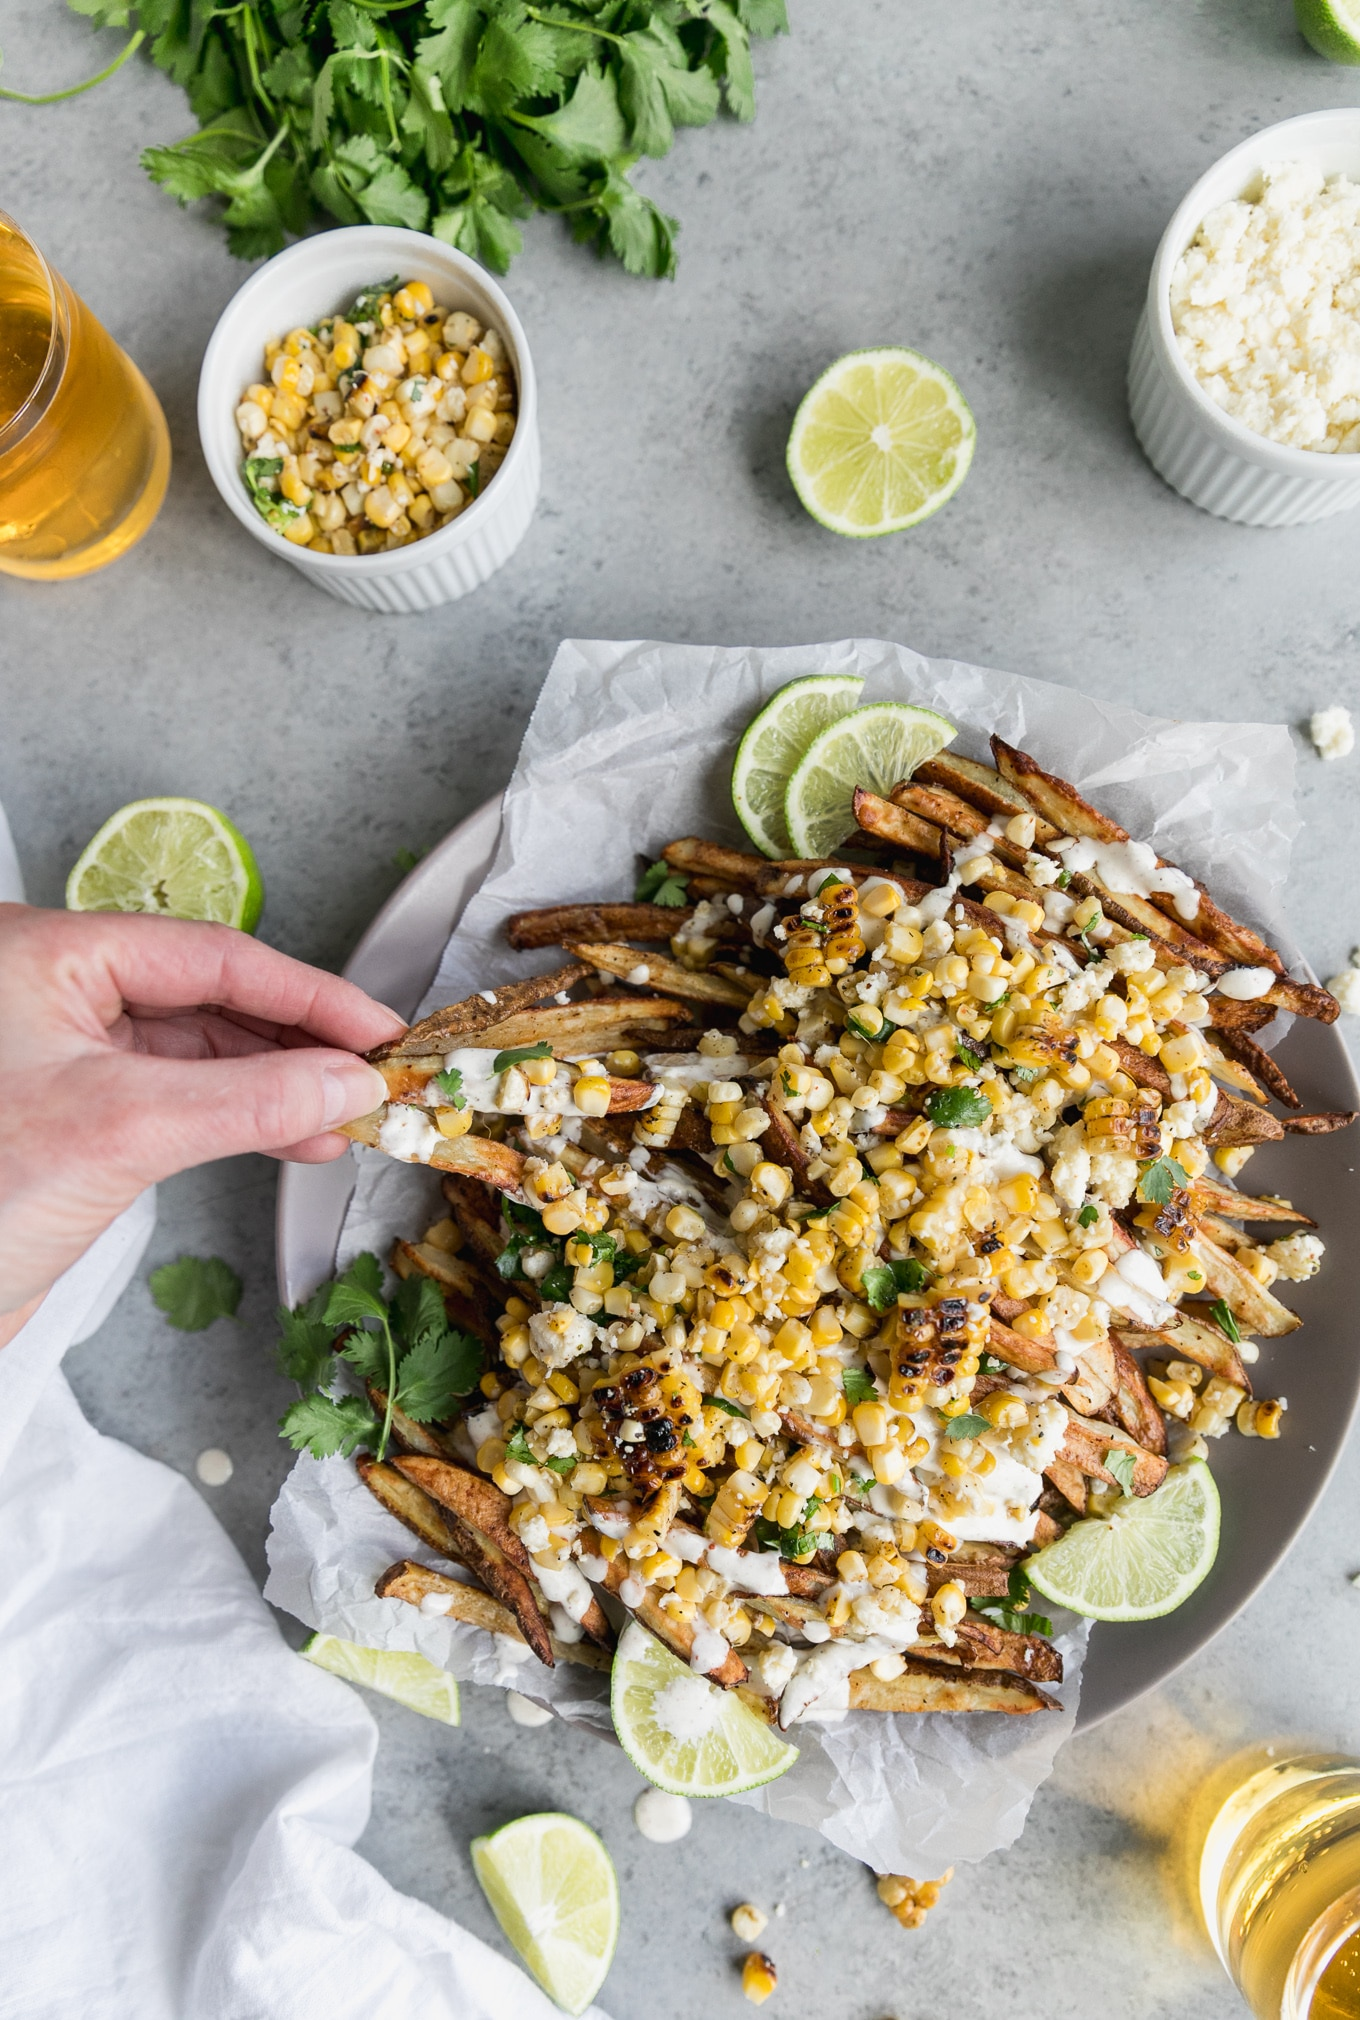 Overhead shot of fries topped with Mexican street corn, crema, lime wedges, and cilantro, with a fork and spoon resting on the plate, and a hand picking up a couple fries